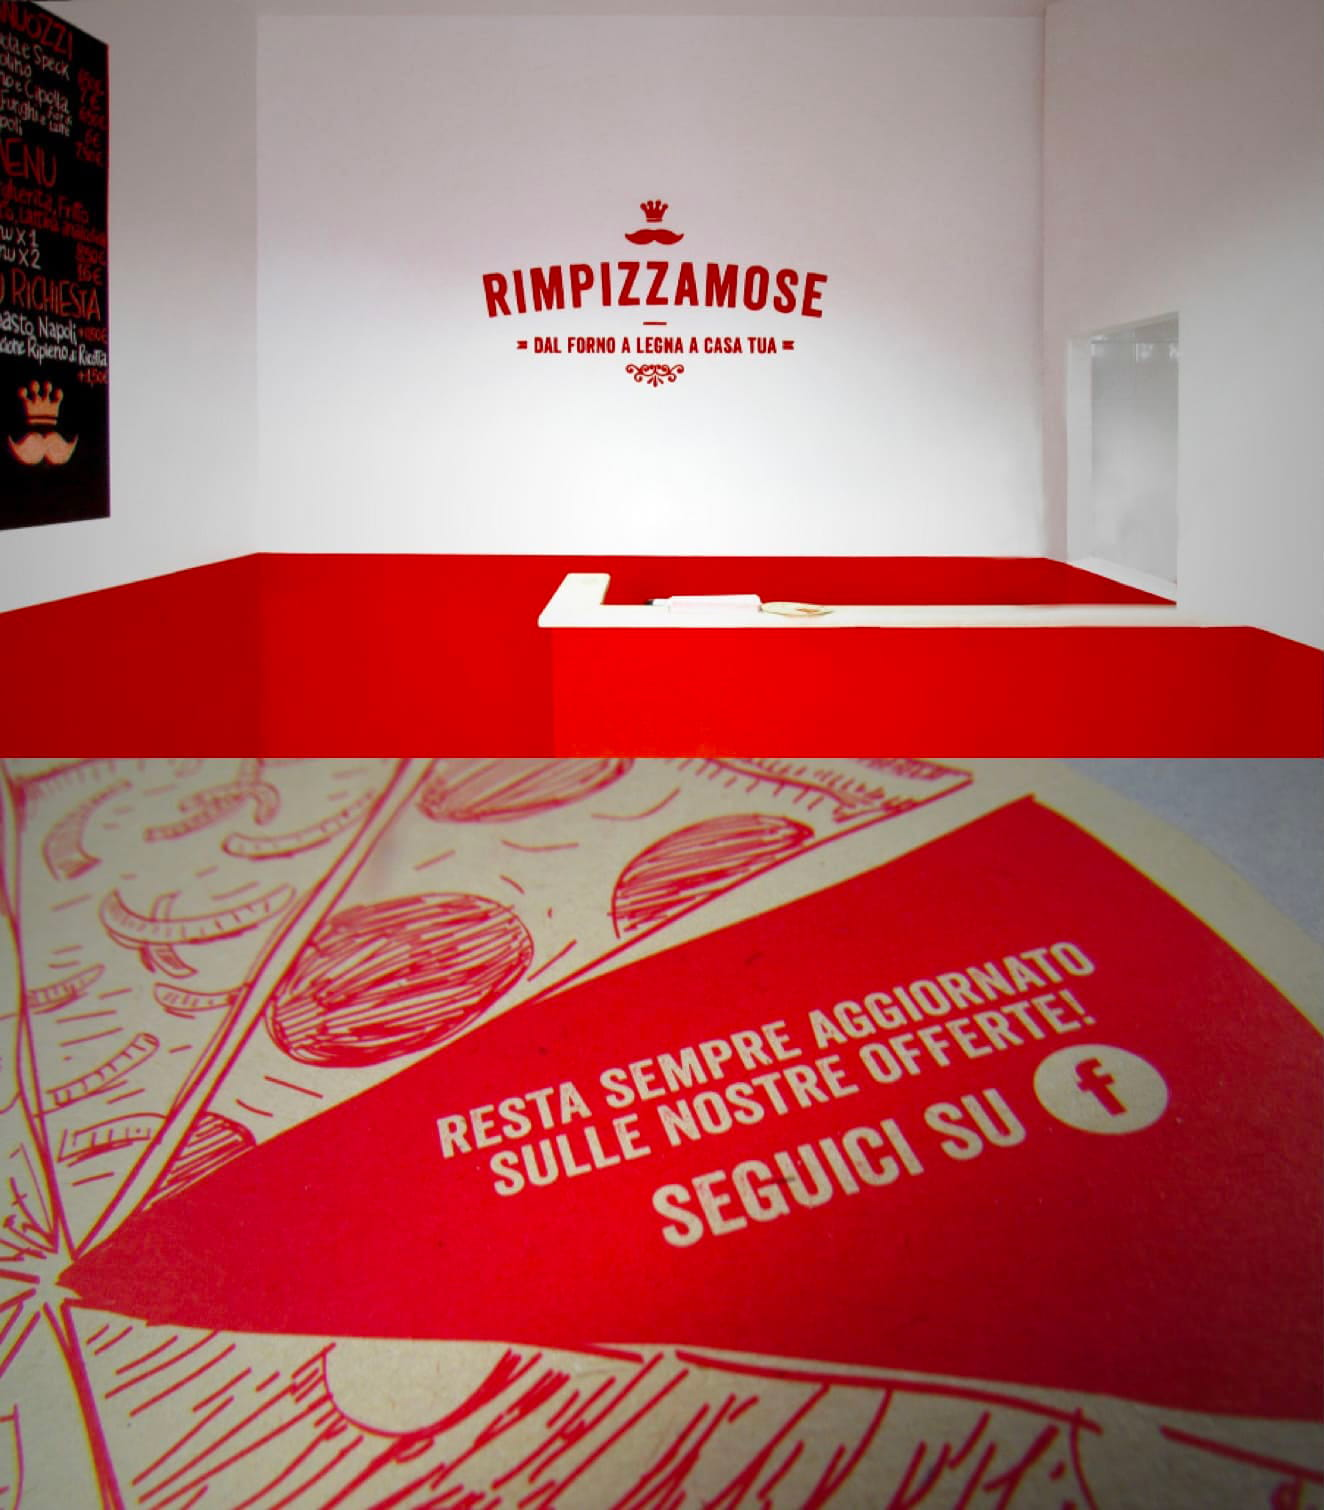 Restaurant brand identity & food packaging design Rimpizzamose - Luther Dsgn